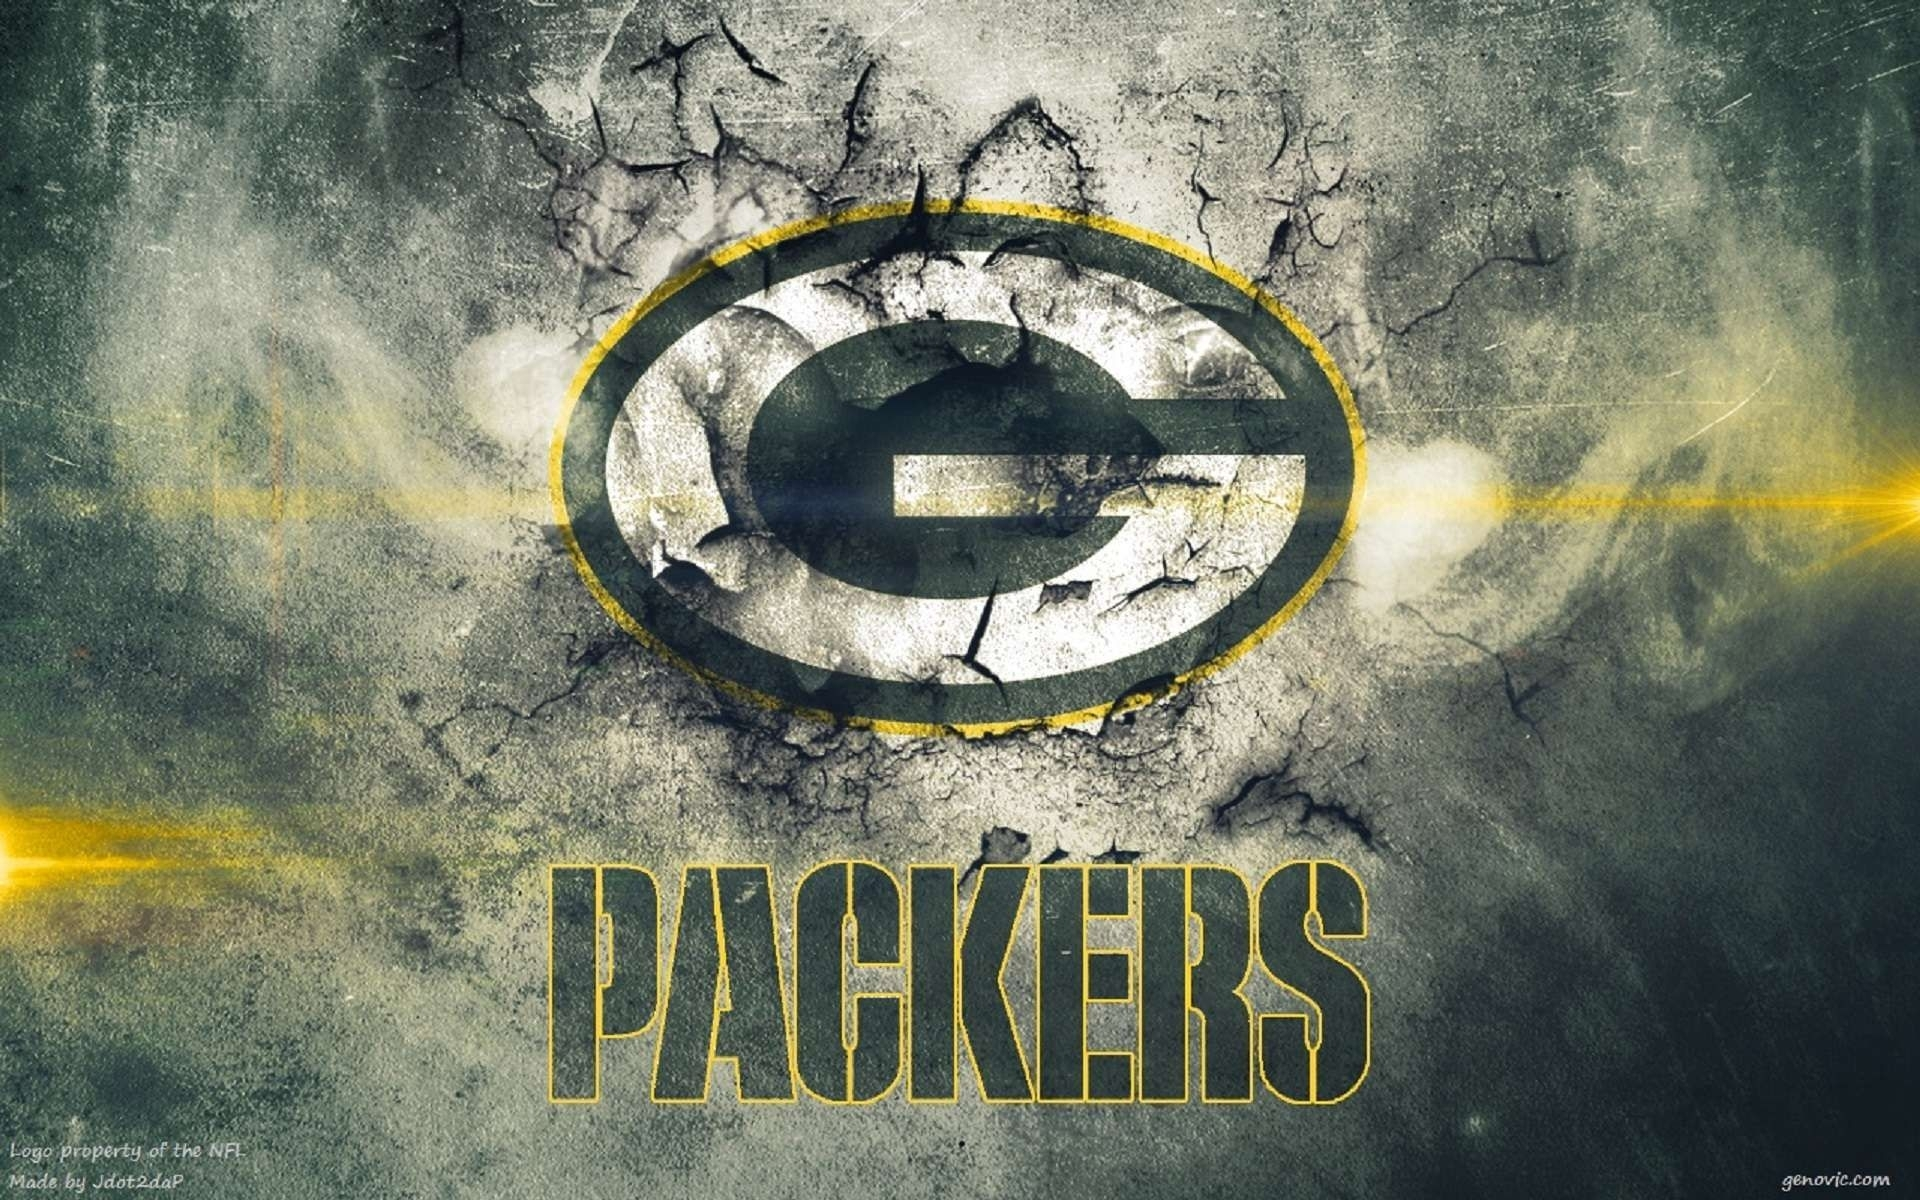 green bay packers wallpaper - http://hdwallpaper/green-bay